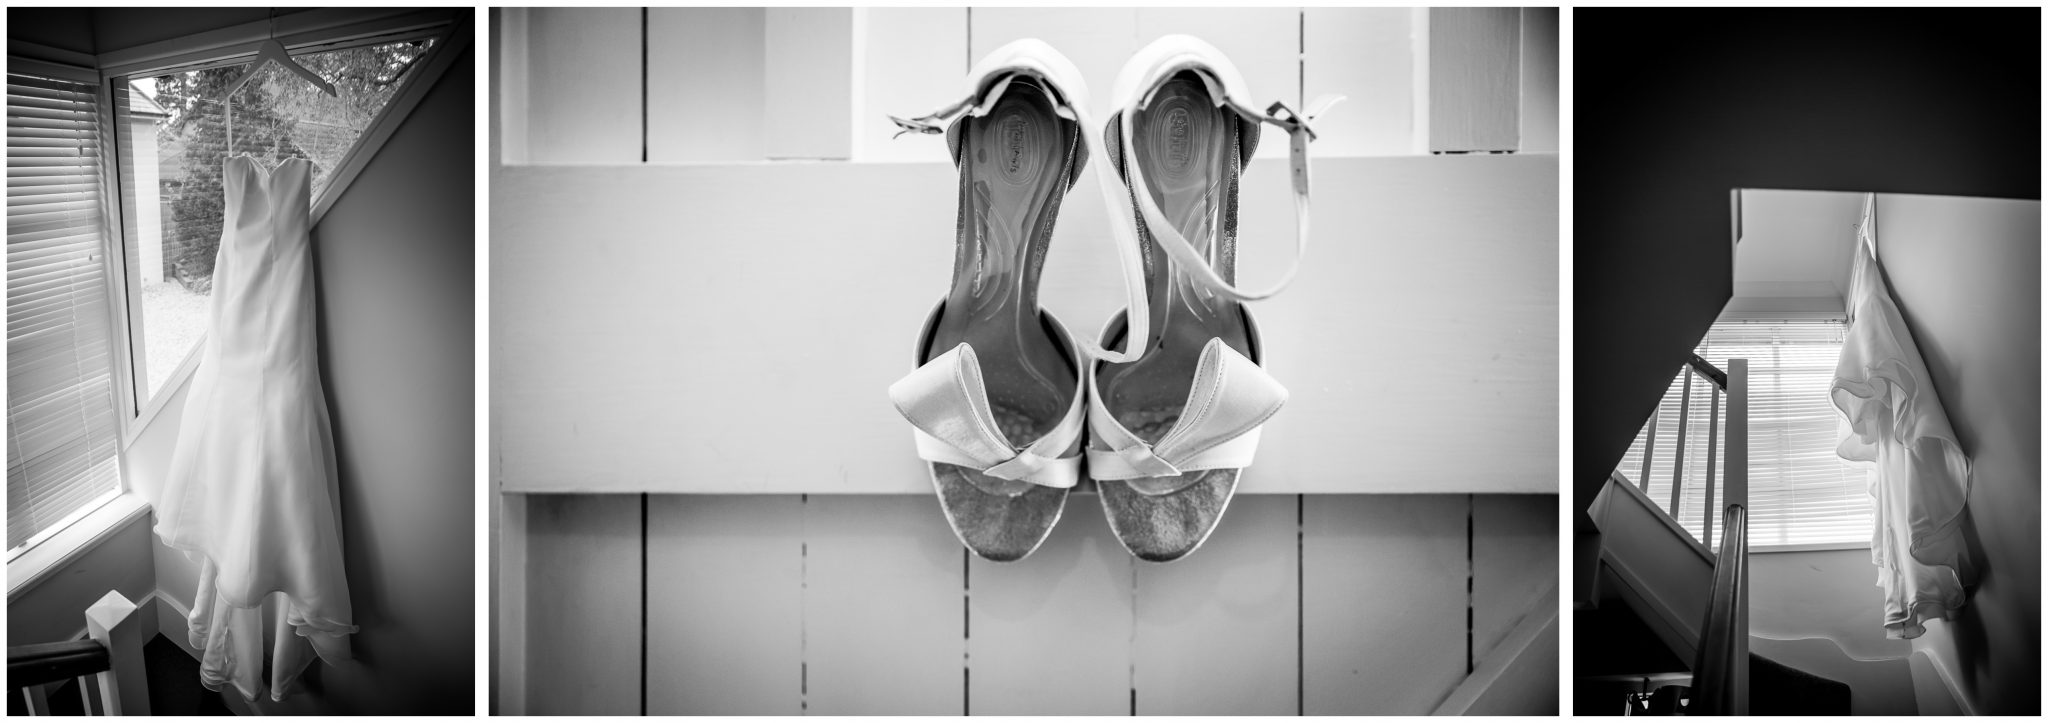 Bridal prep wedding dress and shoes